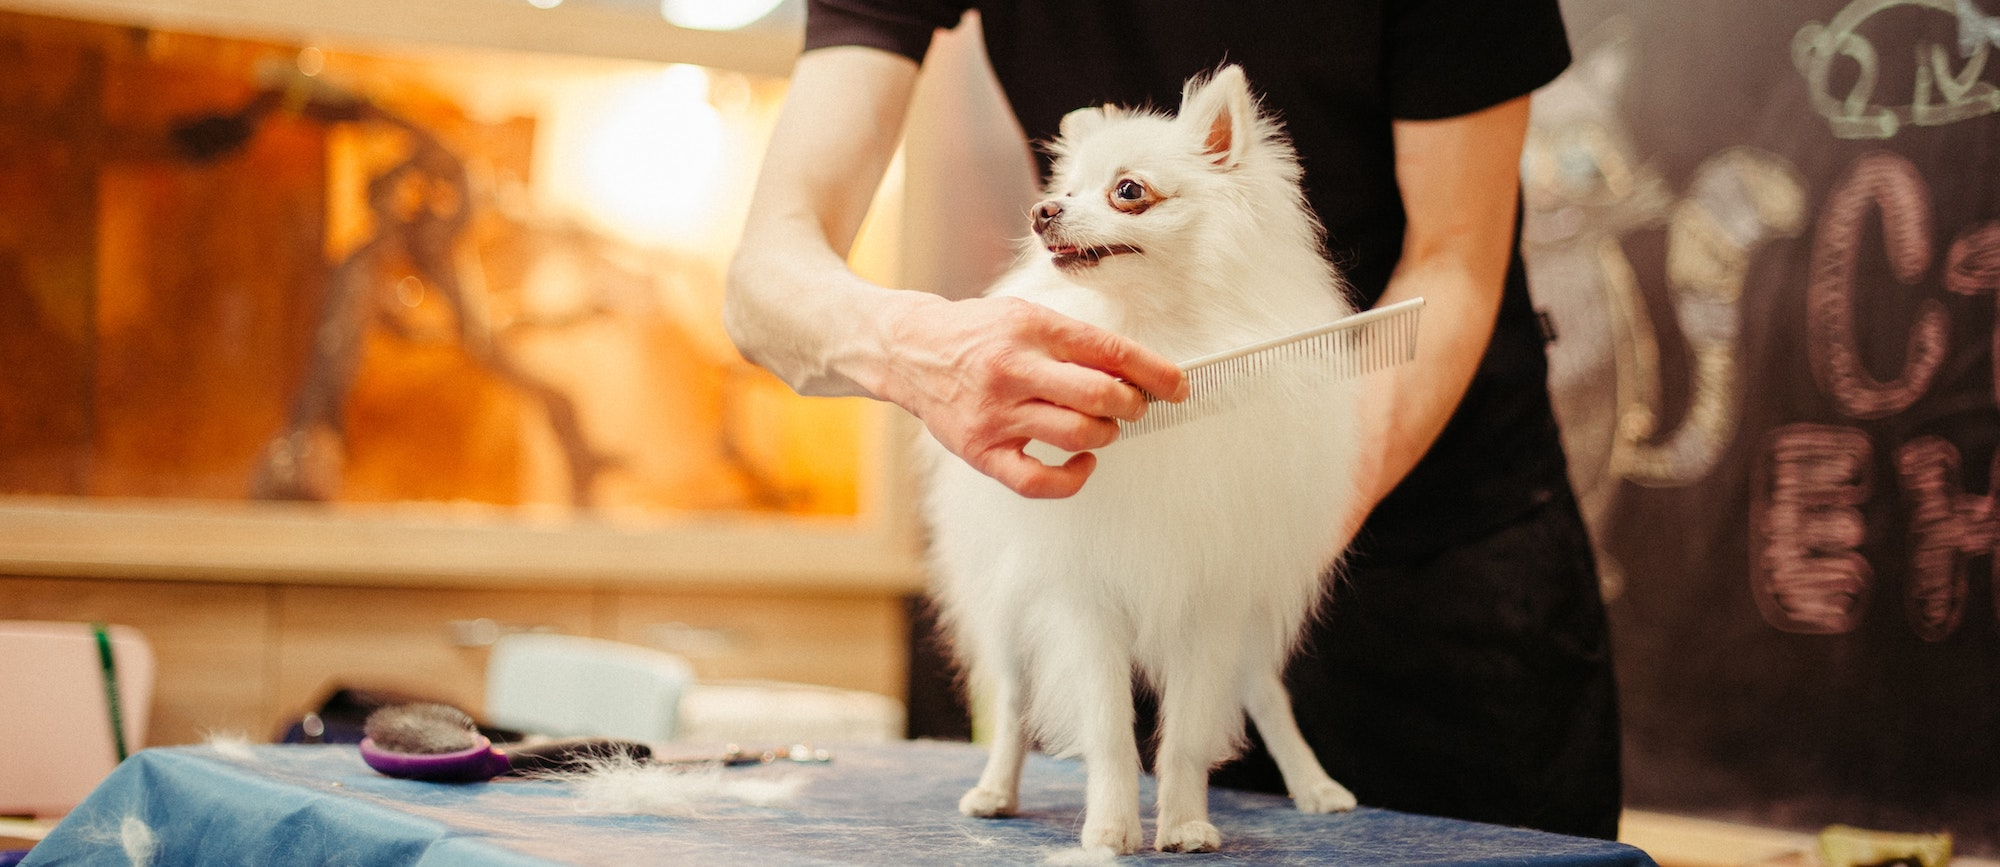 white dog being brushed by a groomer